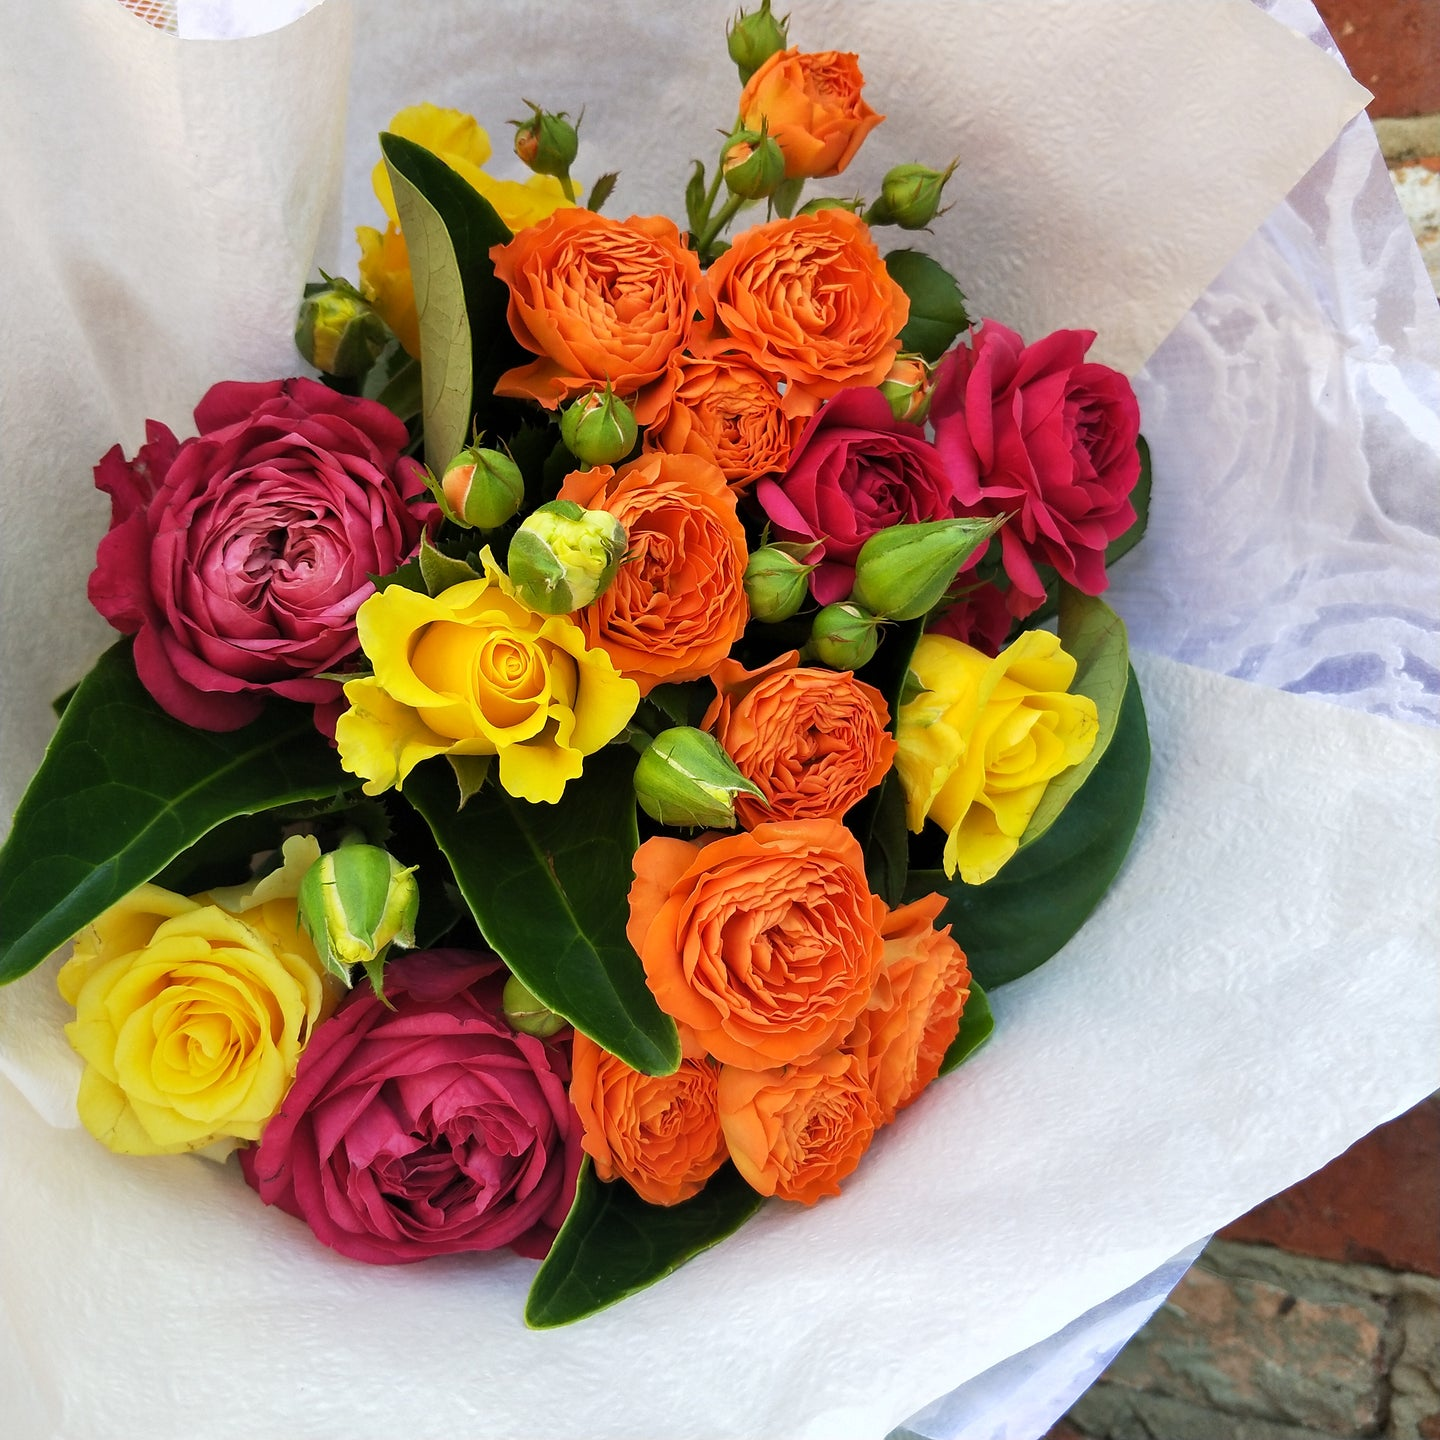 The Rose Fiesta Bouquet